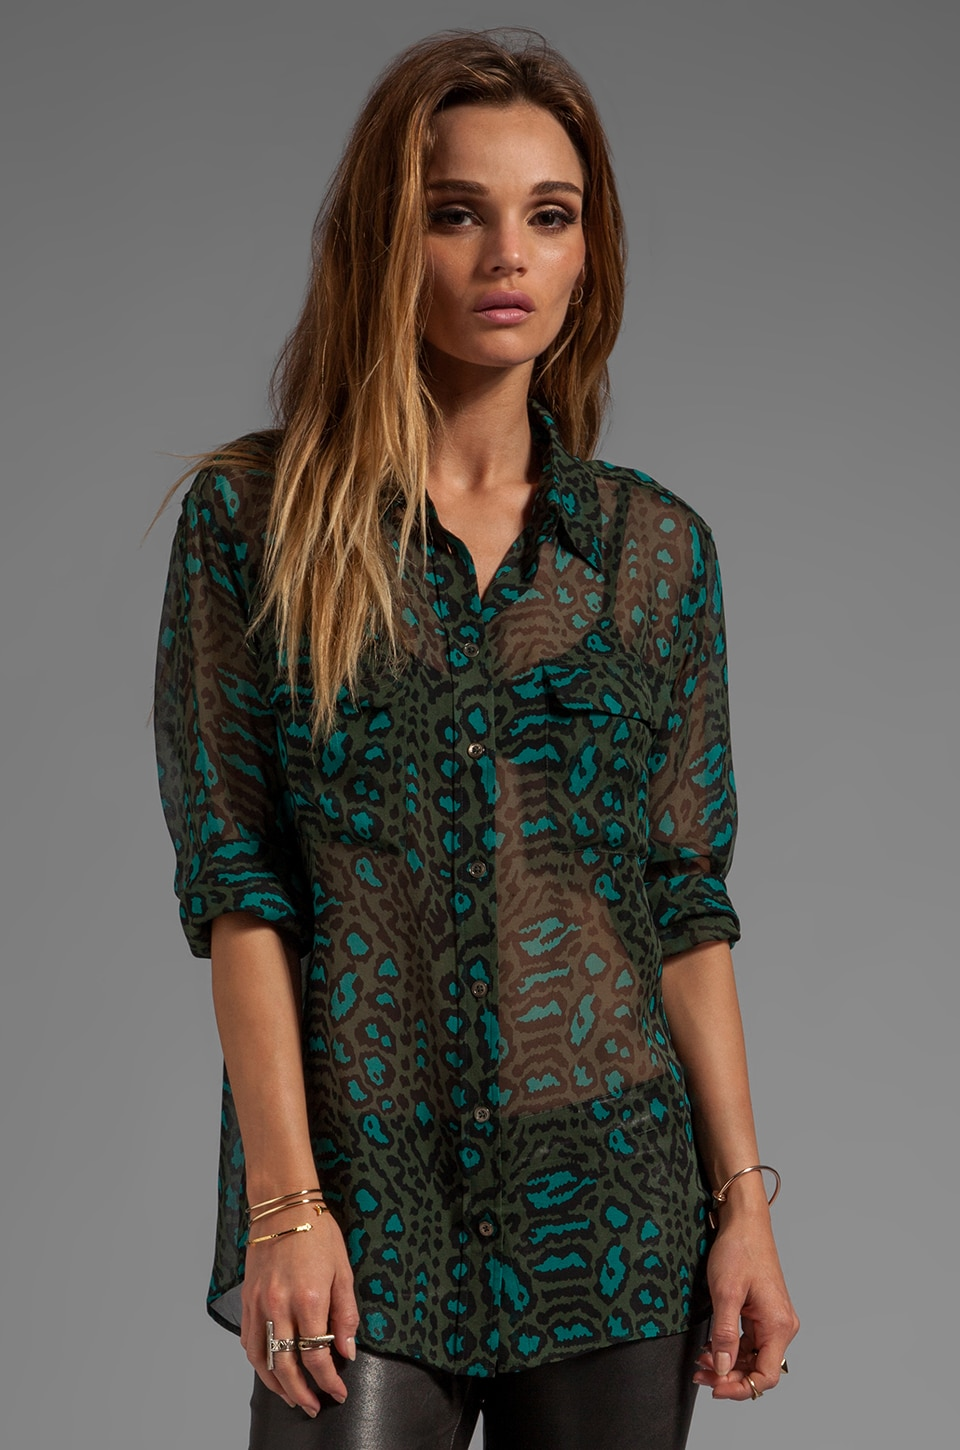 Equipment Distressed Hyde Printed Signature Blouse in Dark Army